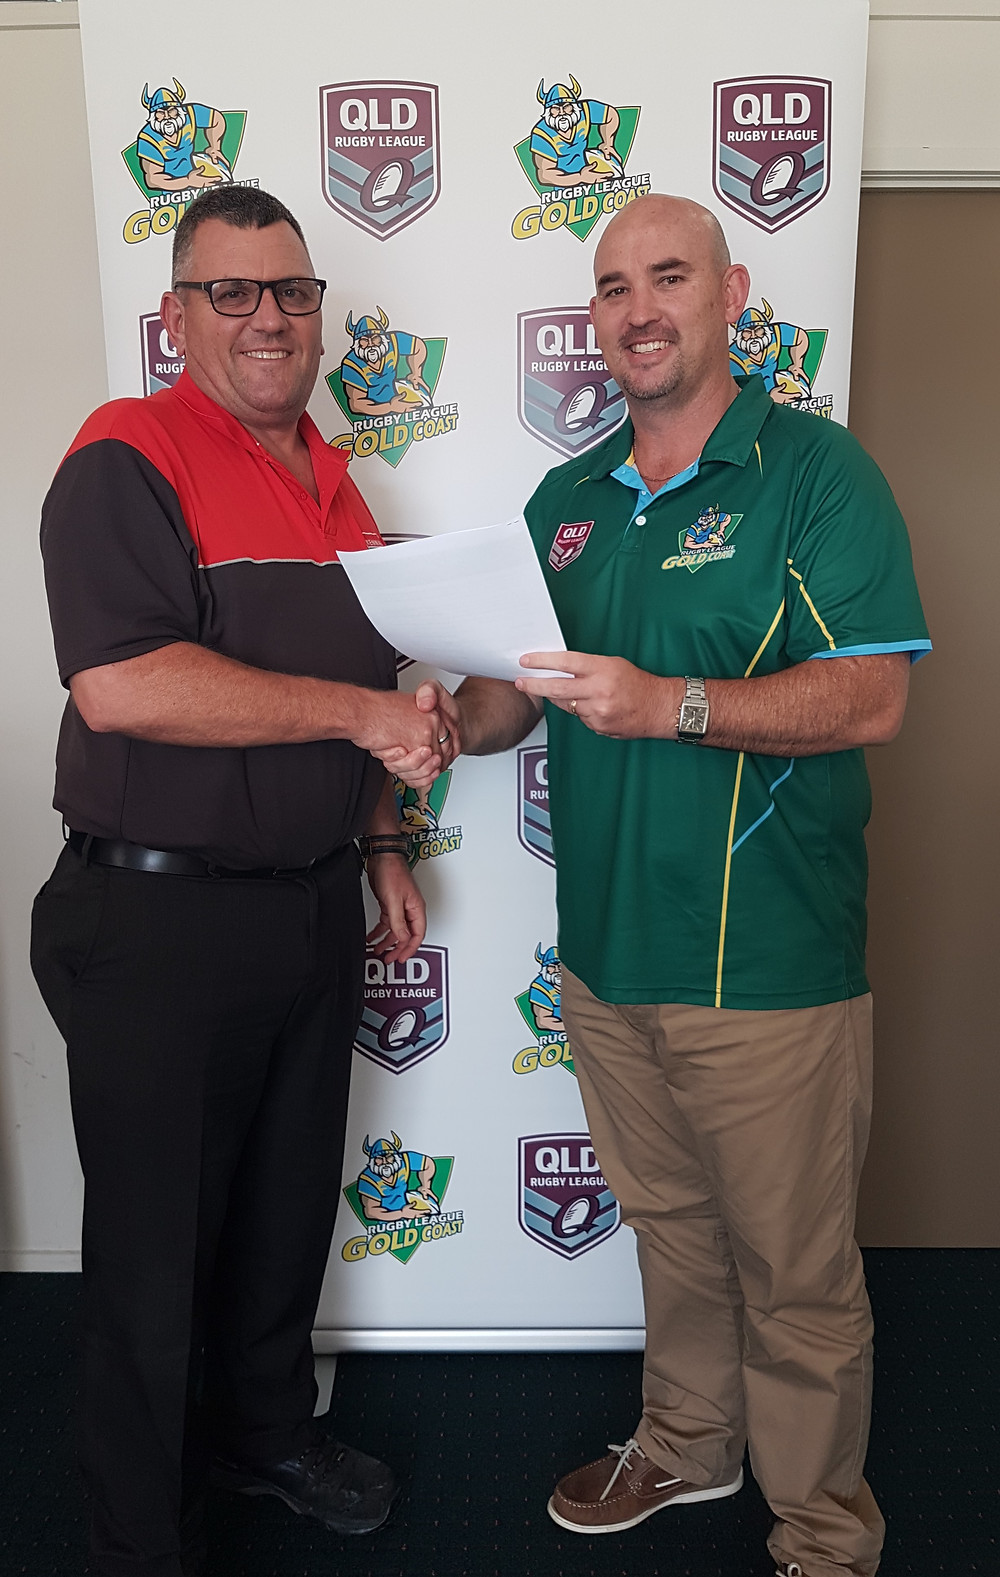 Kennards Hire Area Manager Steve shaking hands with RLGC Manager Scott Dunshea